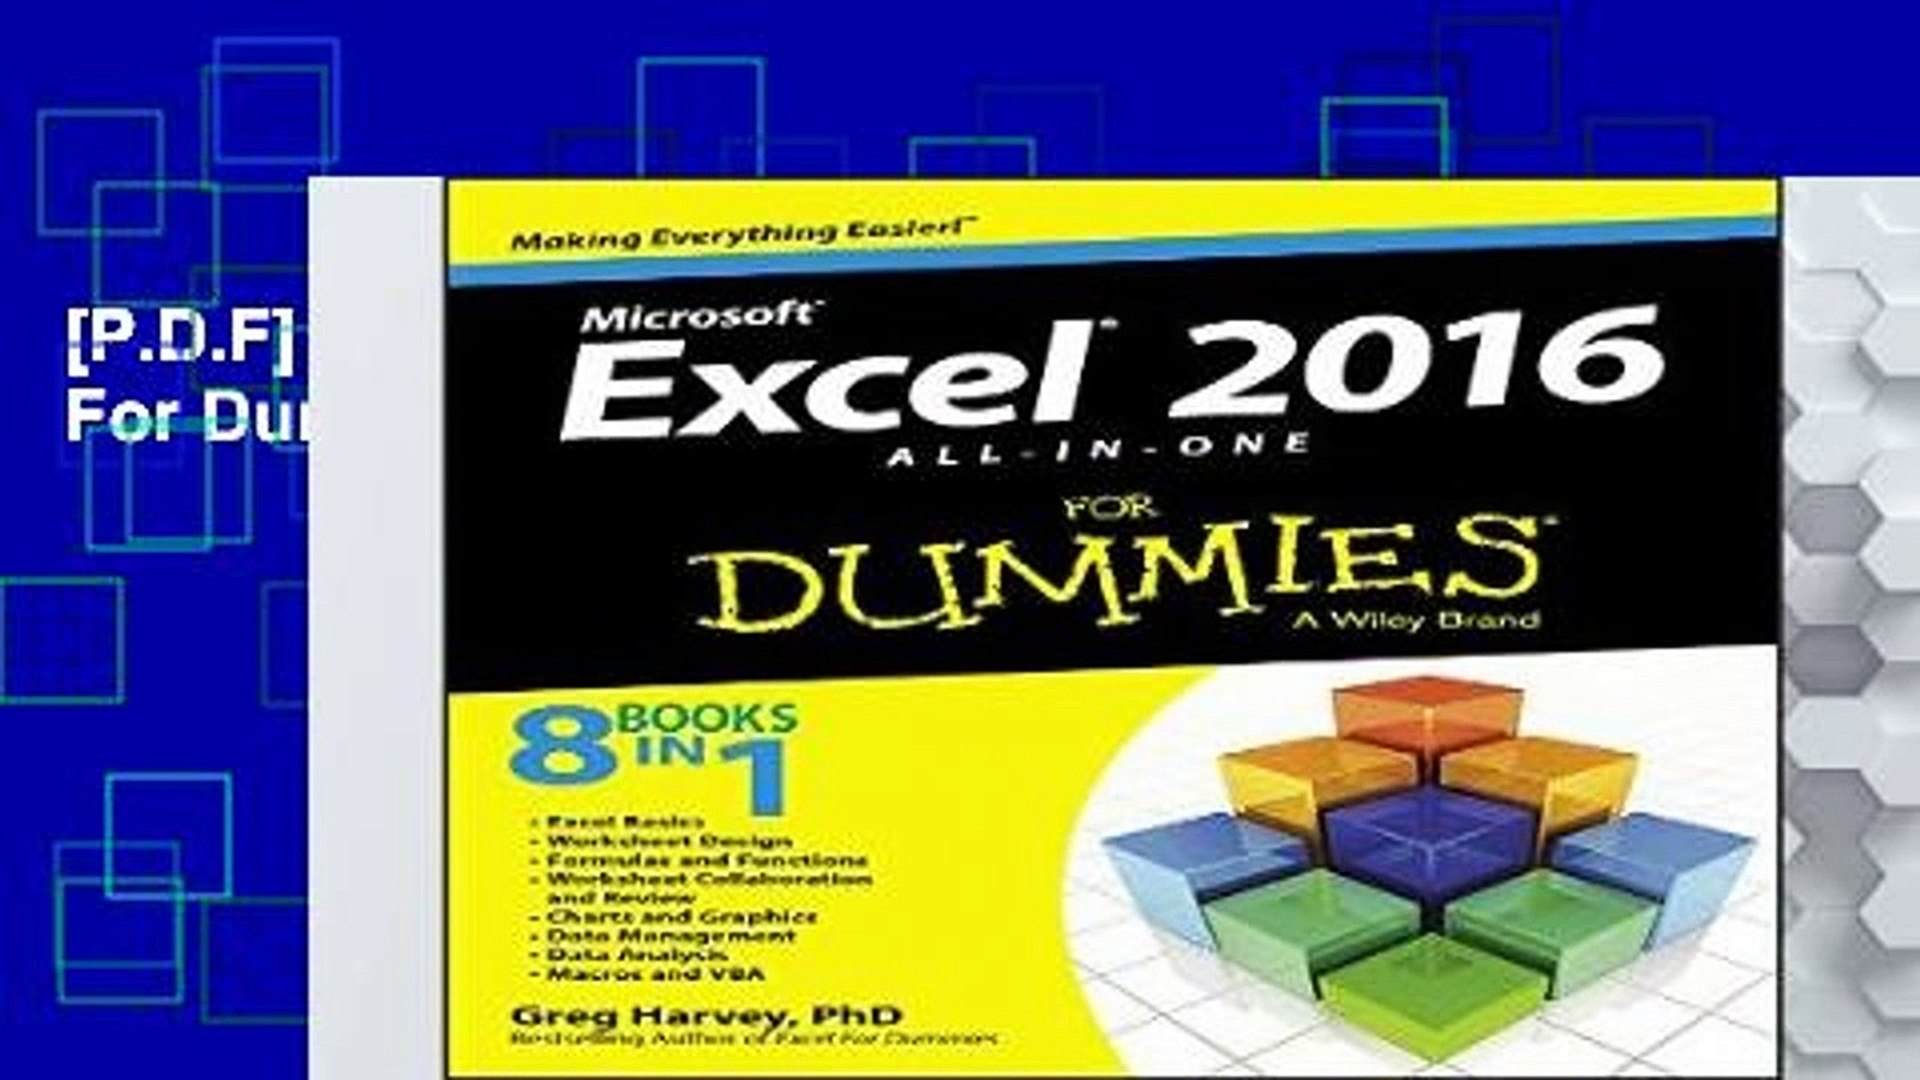 [P D F] Excel 2016 All-In-One For Dummies [P D F]